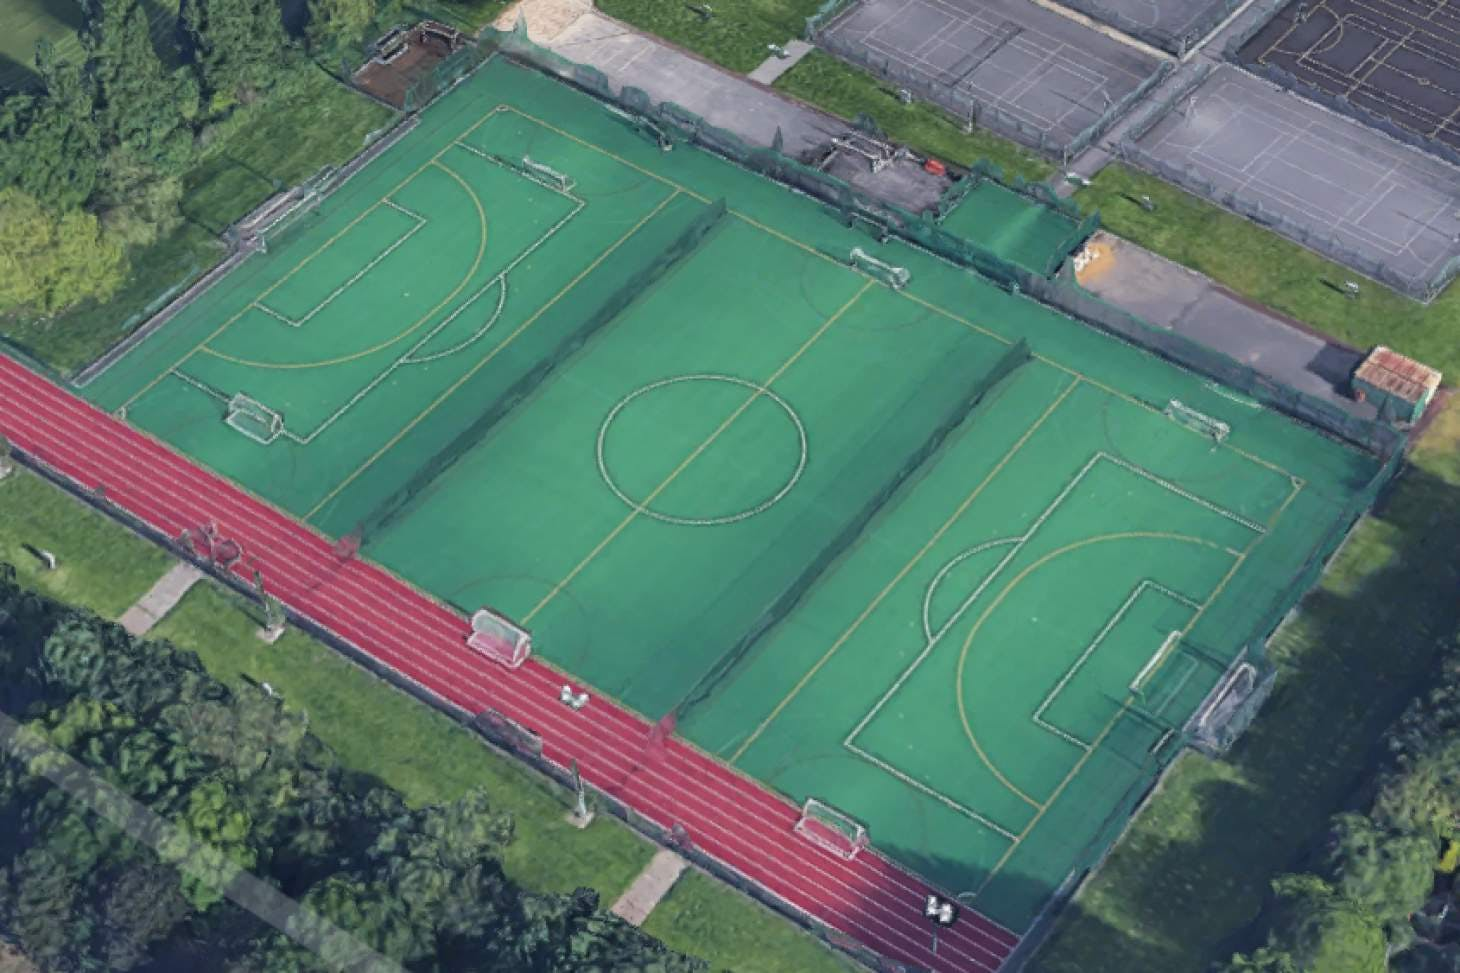 Dorcan Recreation Complex 7 a side | Astroturf football pitch